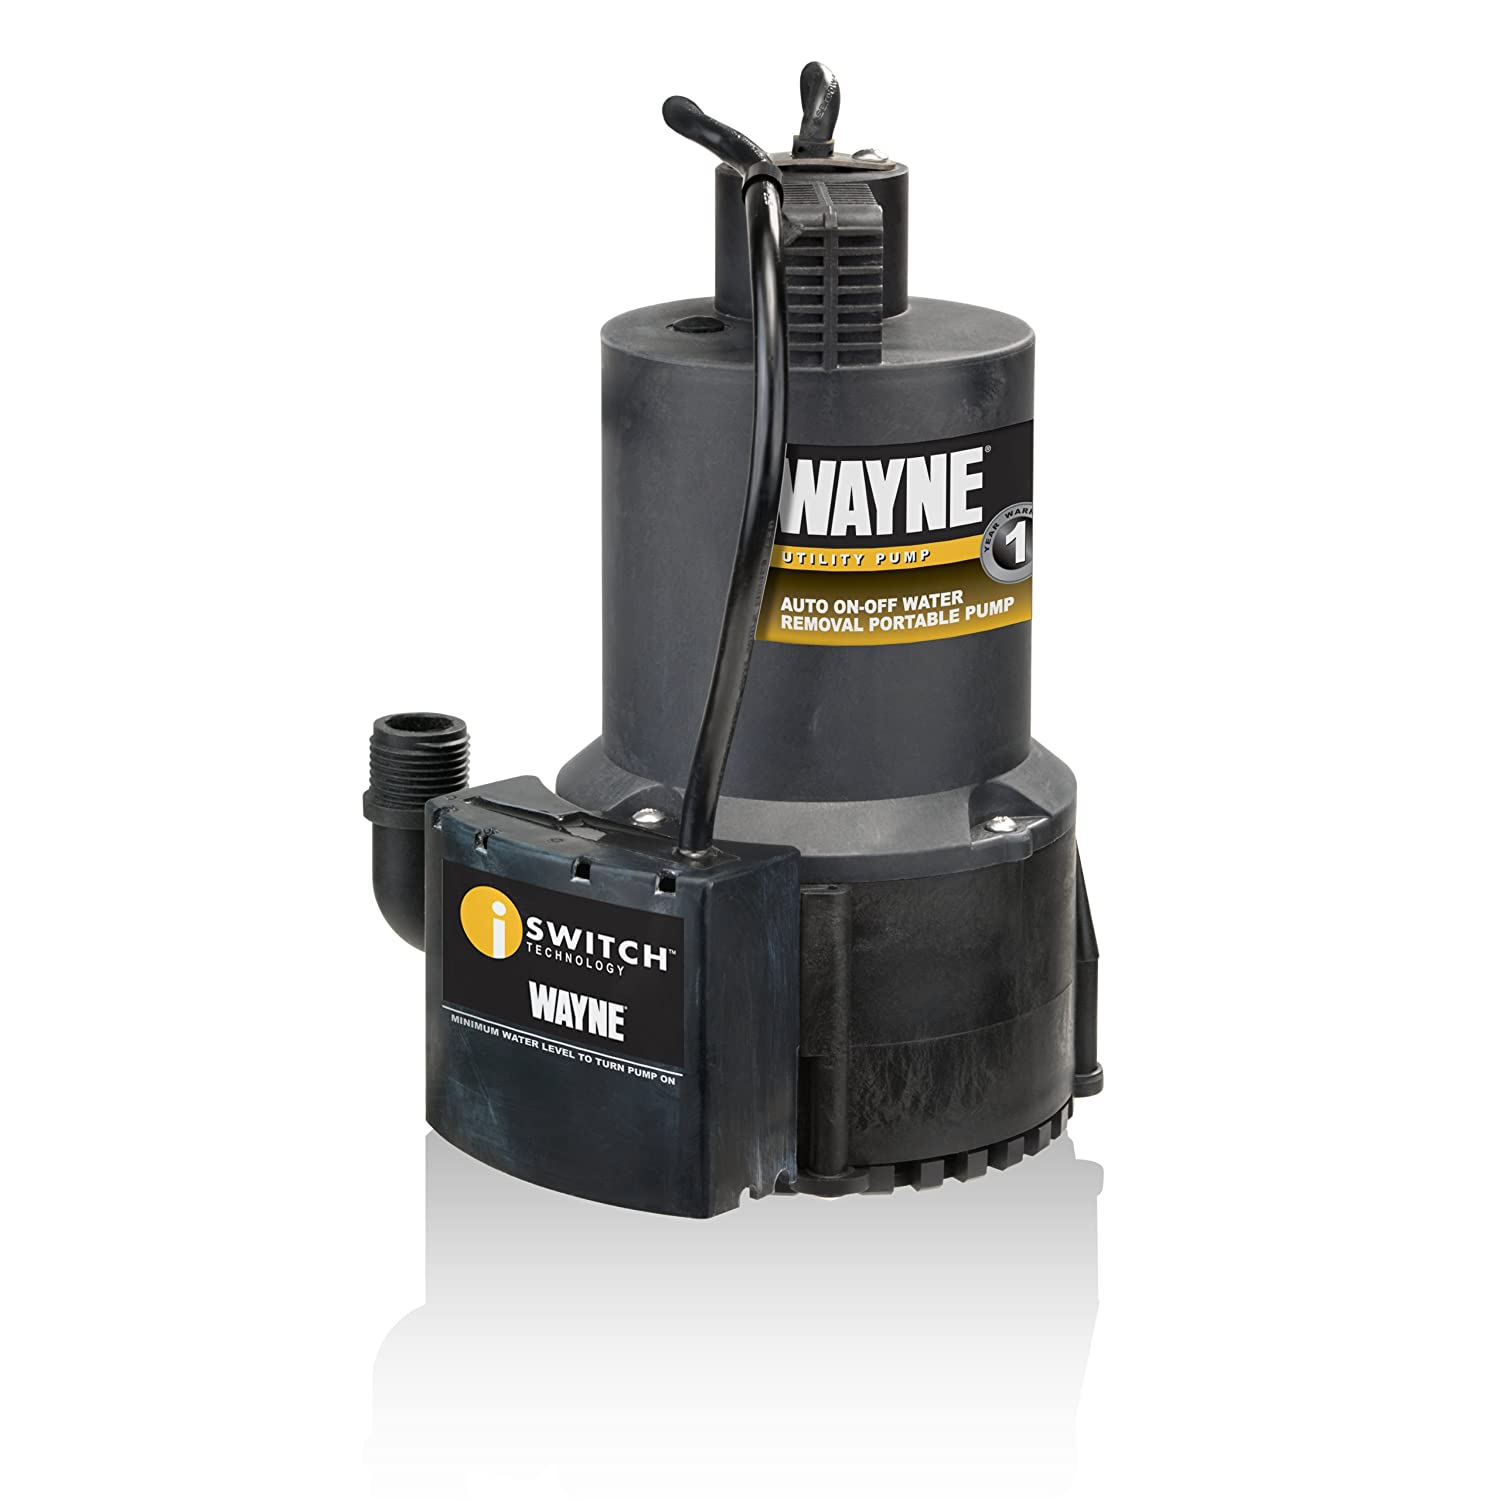 WAYNE EEAUP250 1 4 HP Automatic ON OFF Electric Water Removal Pump